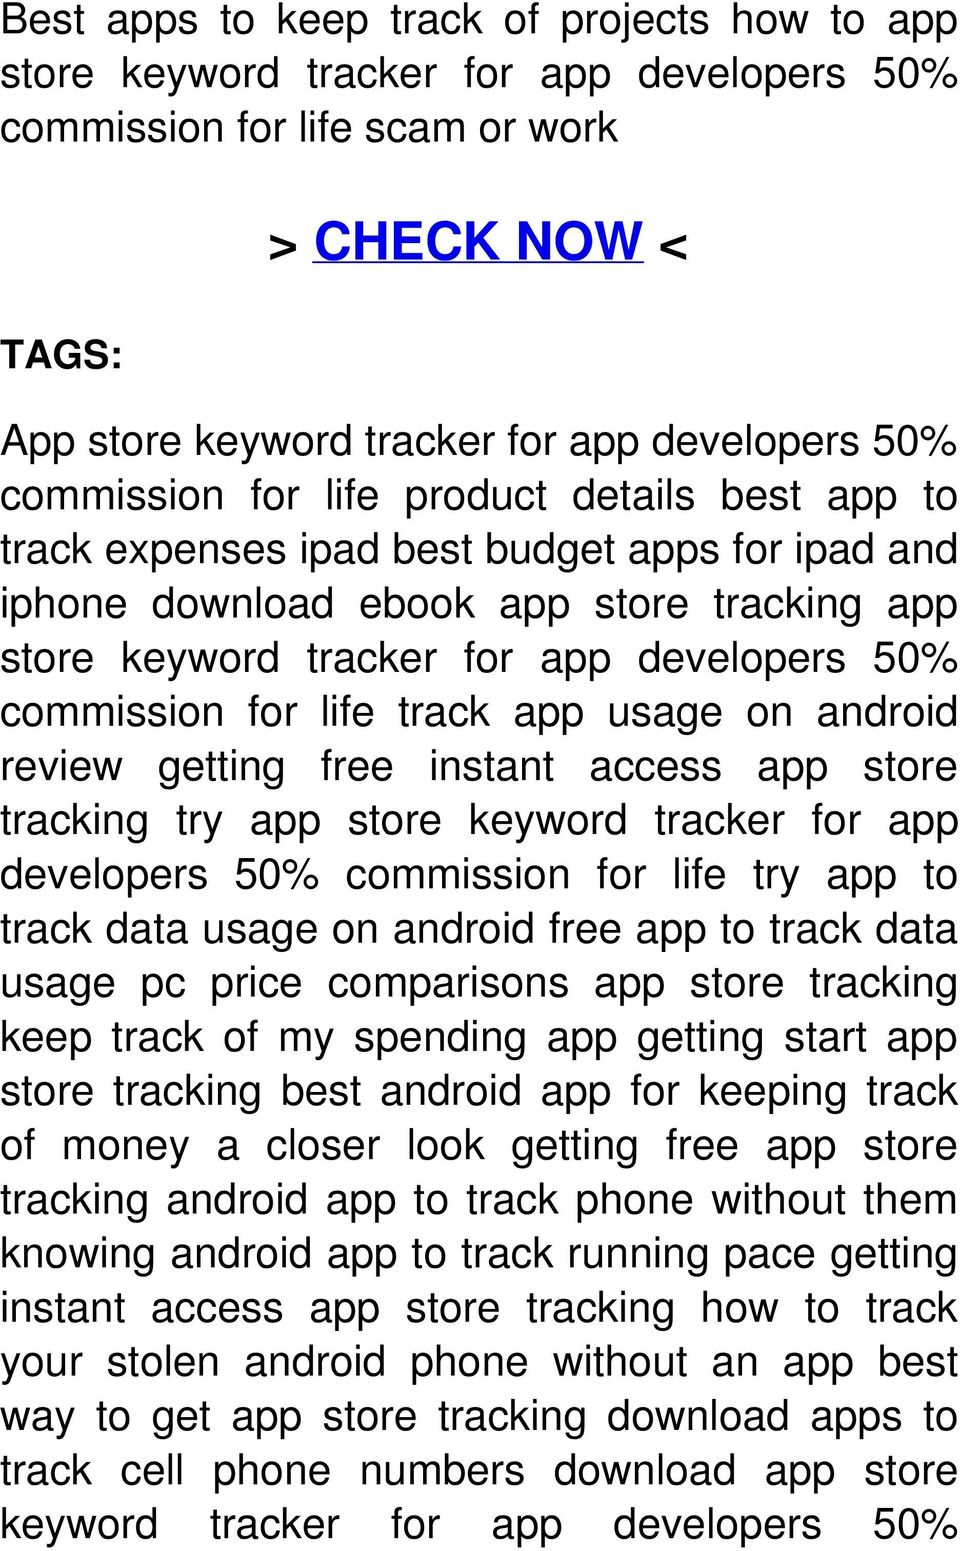 for life track app usage on android review getting free instant access app store tracking try app store keyword tracker for app developers 50% commission for life try app to track data usage on